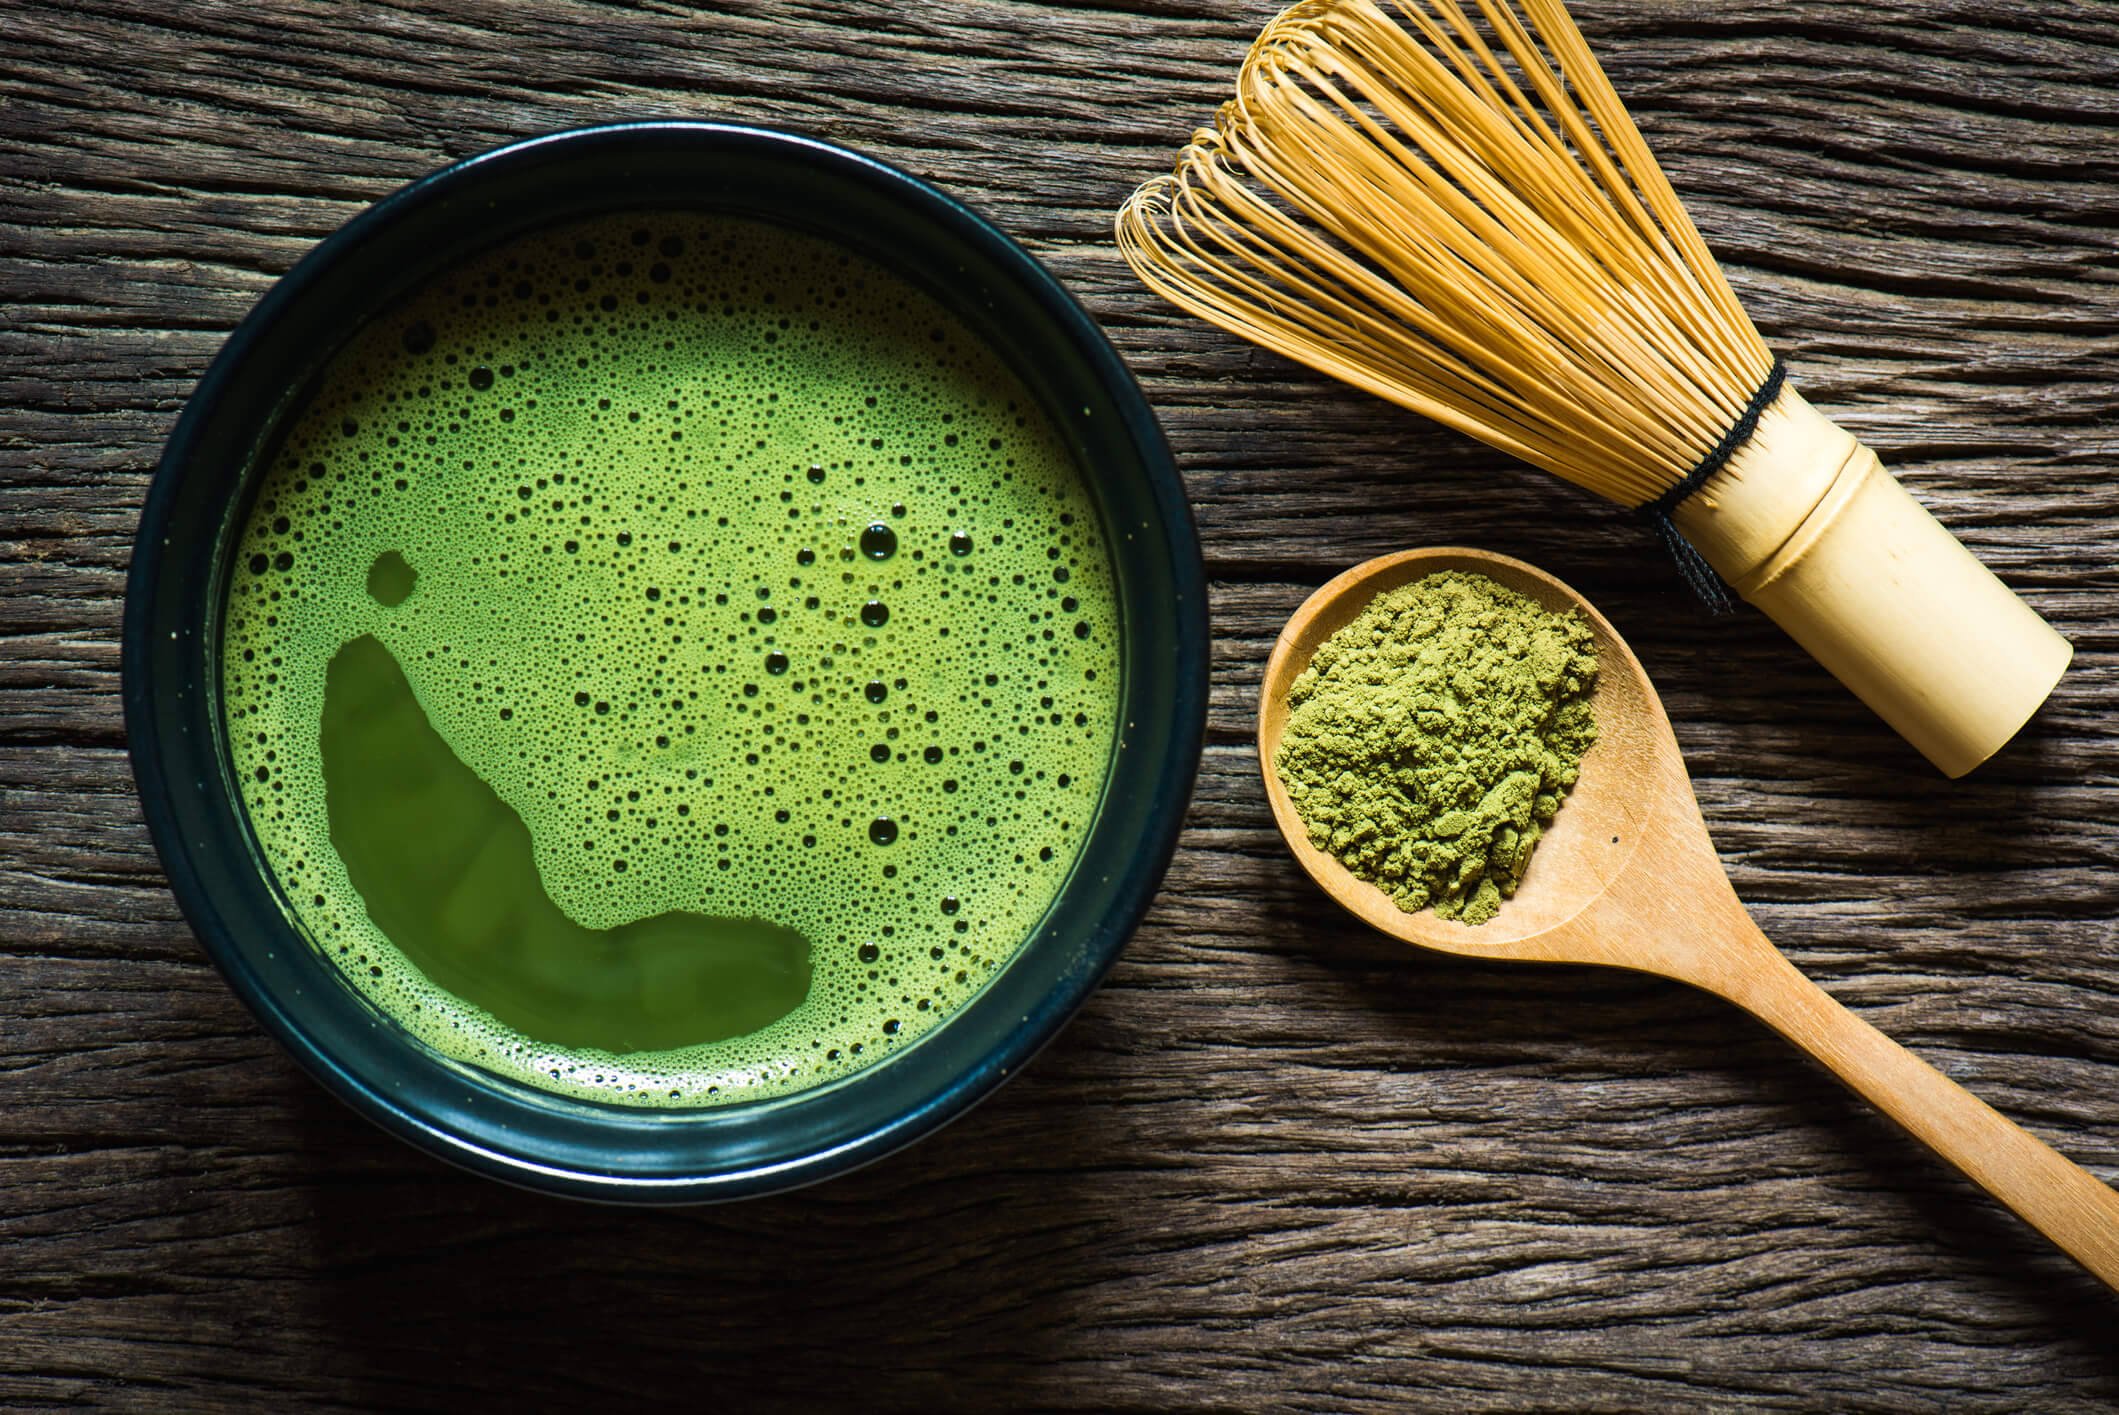 Anti-cancer diet: Matcha